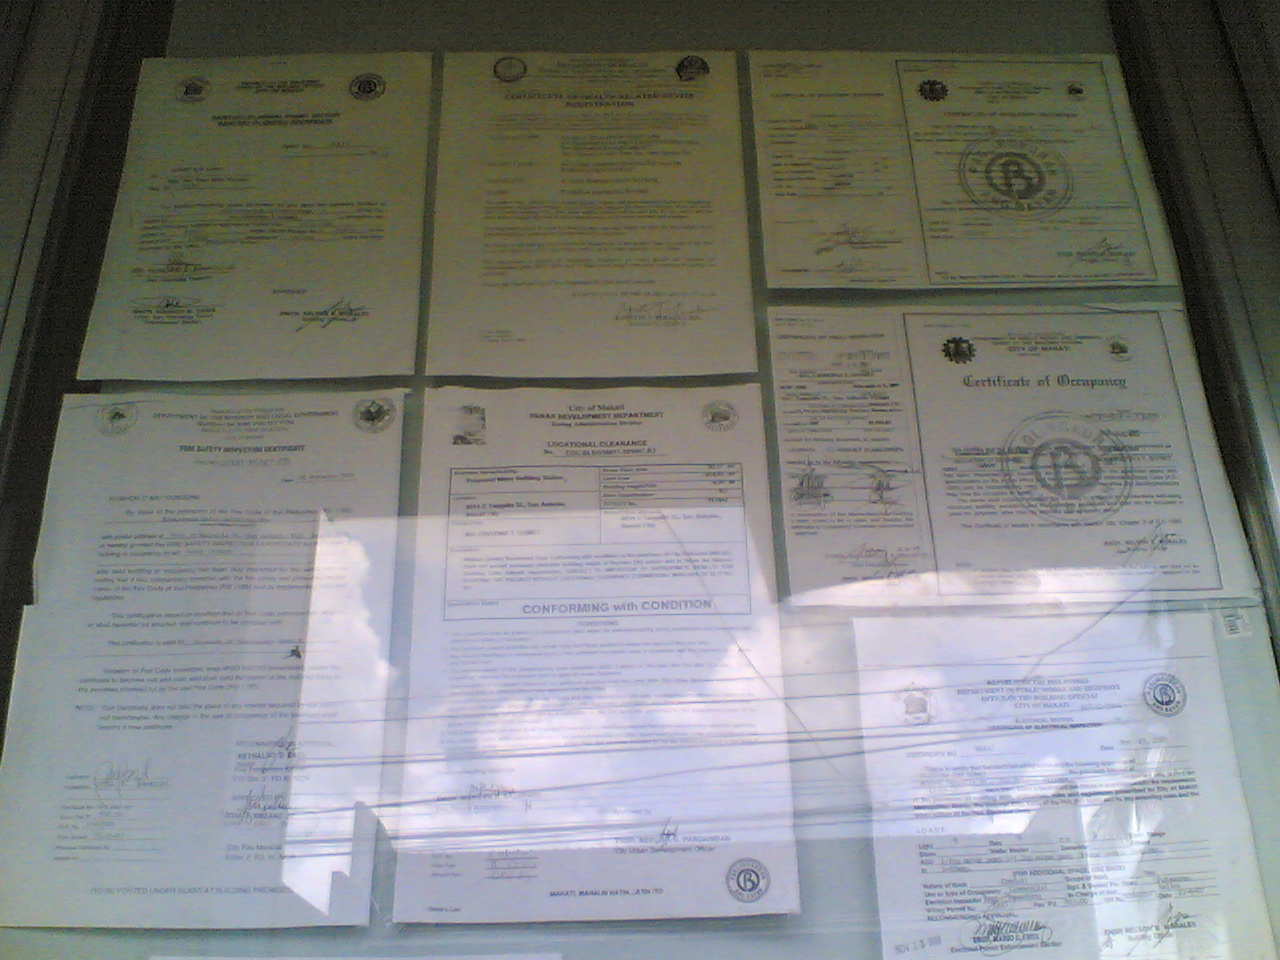 carinderia sanitation An ordinance enacting the health and sanitation code of the province of pangasinan  carinderia, fast food, refreshment parlor, snack bar, night clubs, and other .